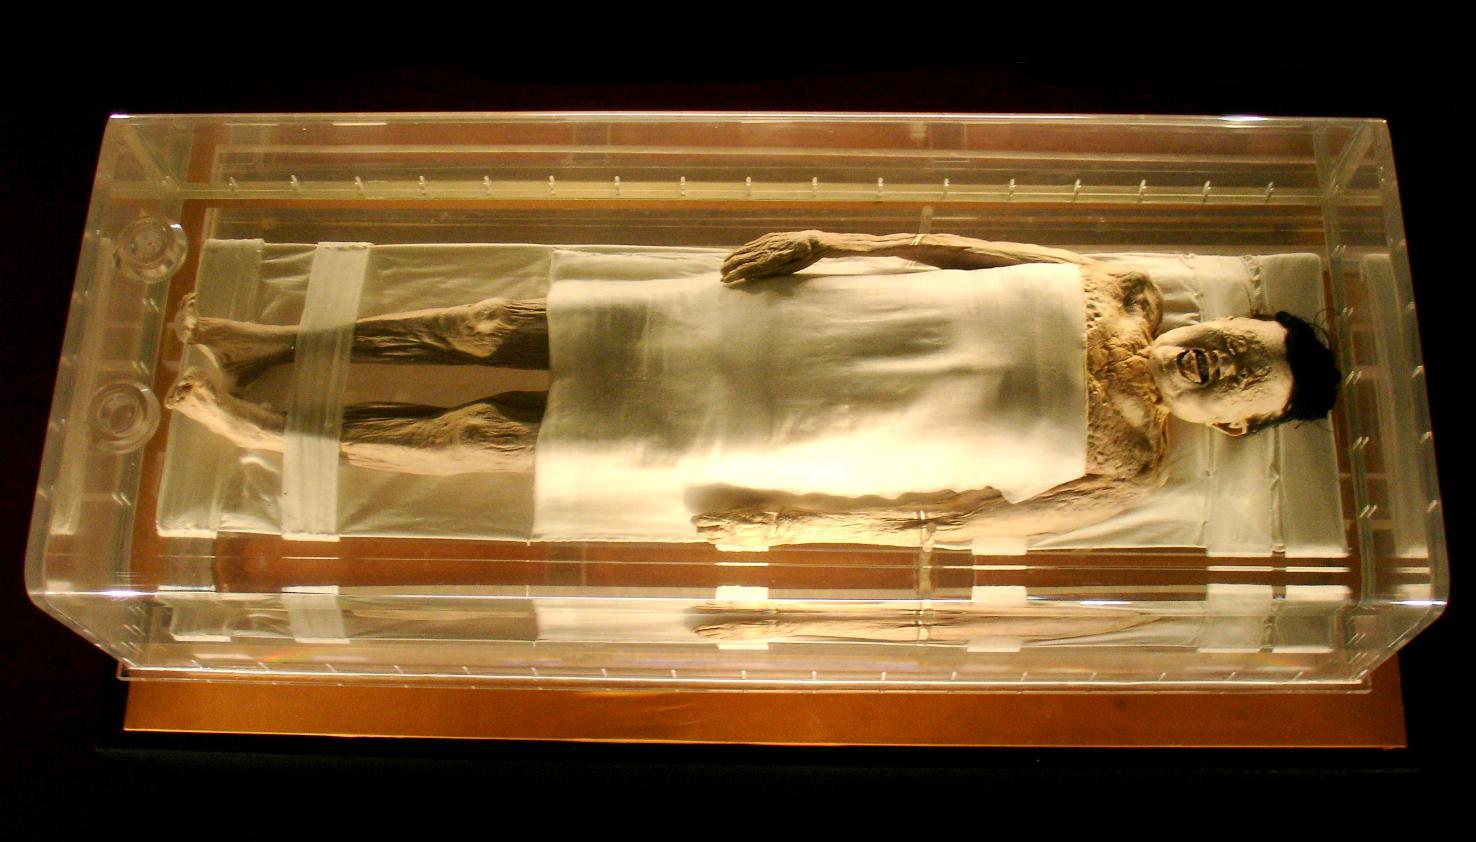 21 incredibly well-preserved human bodies that survived the ages astonishingly 8